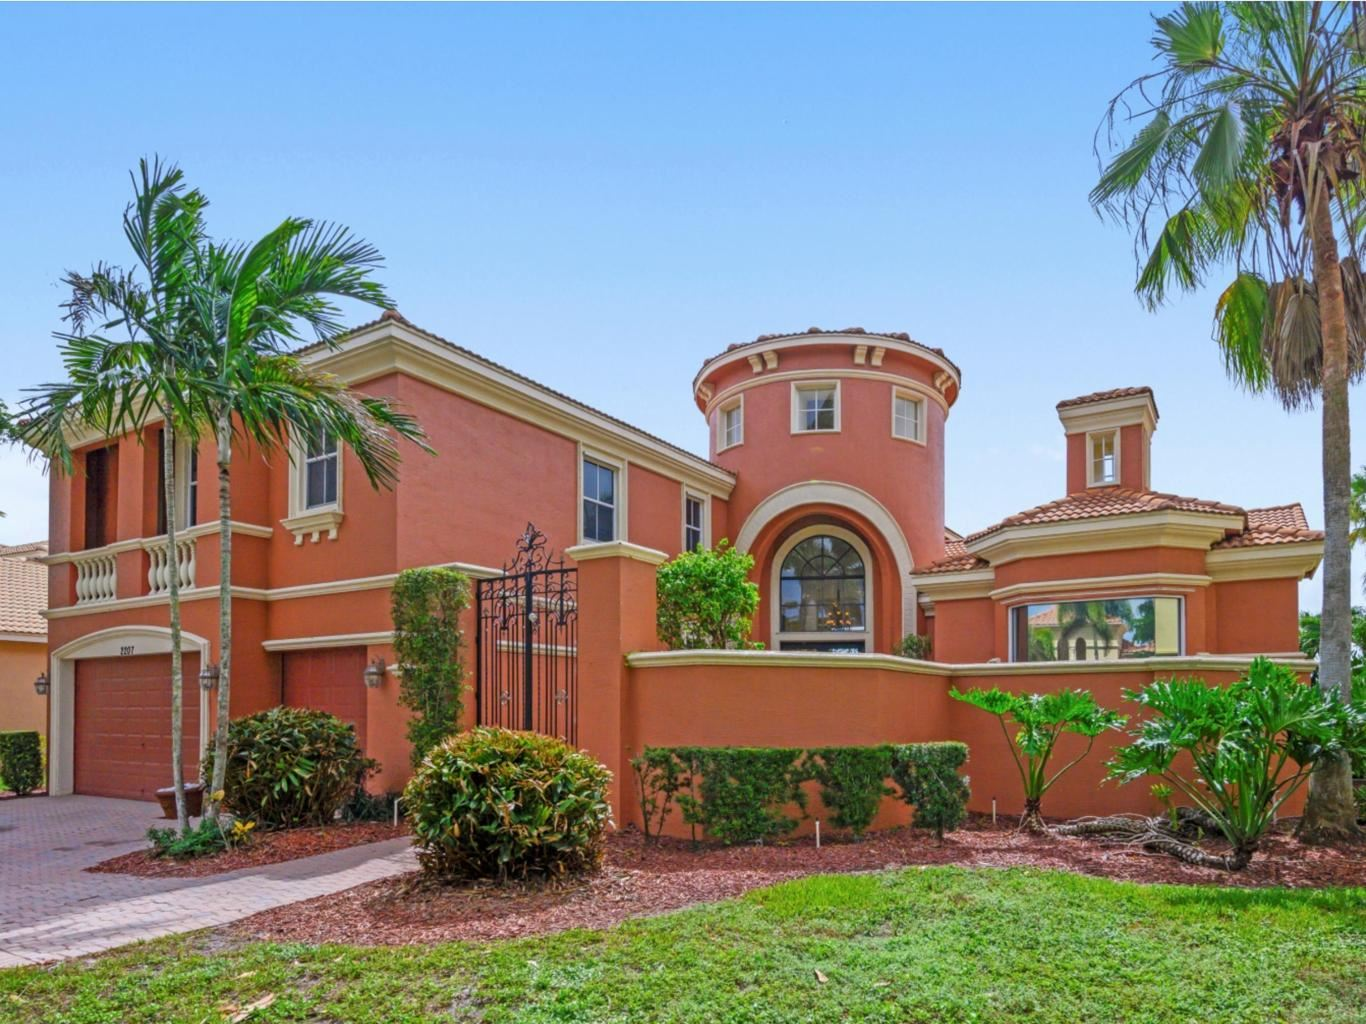 2207 Stotesbury Way, Wellington, FL 33414 - #: RX-10649679